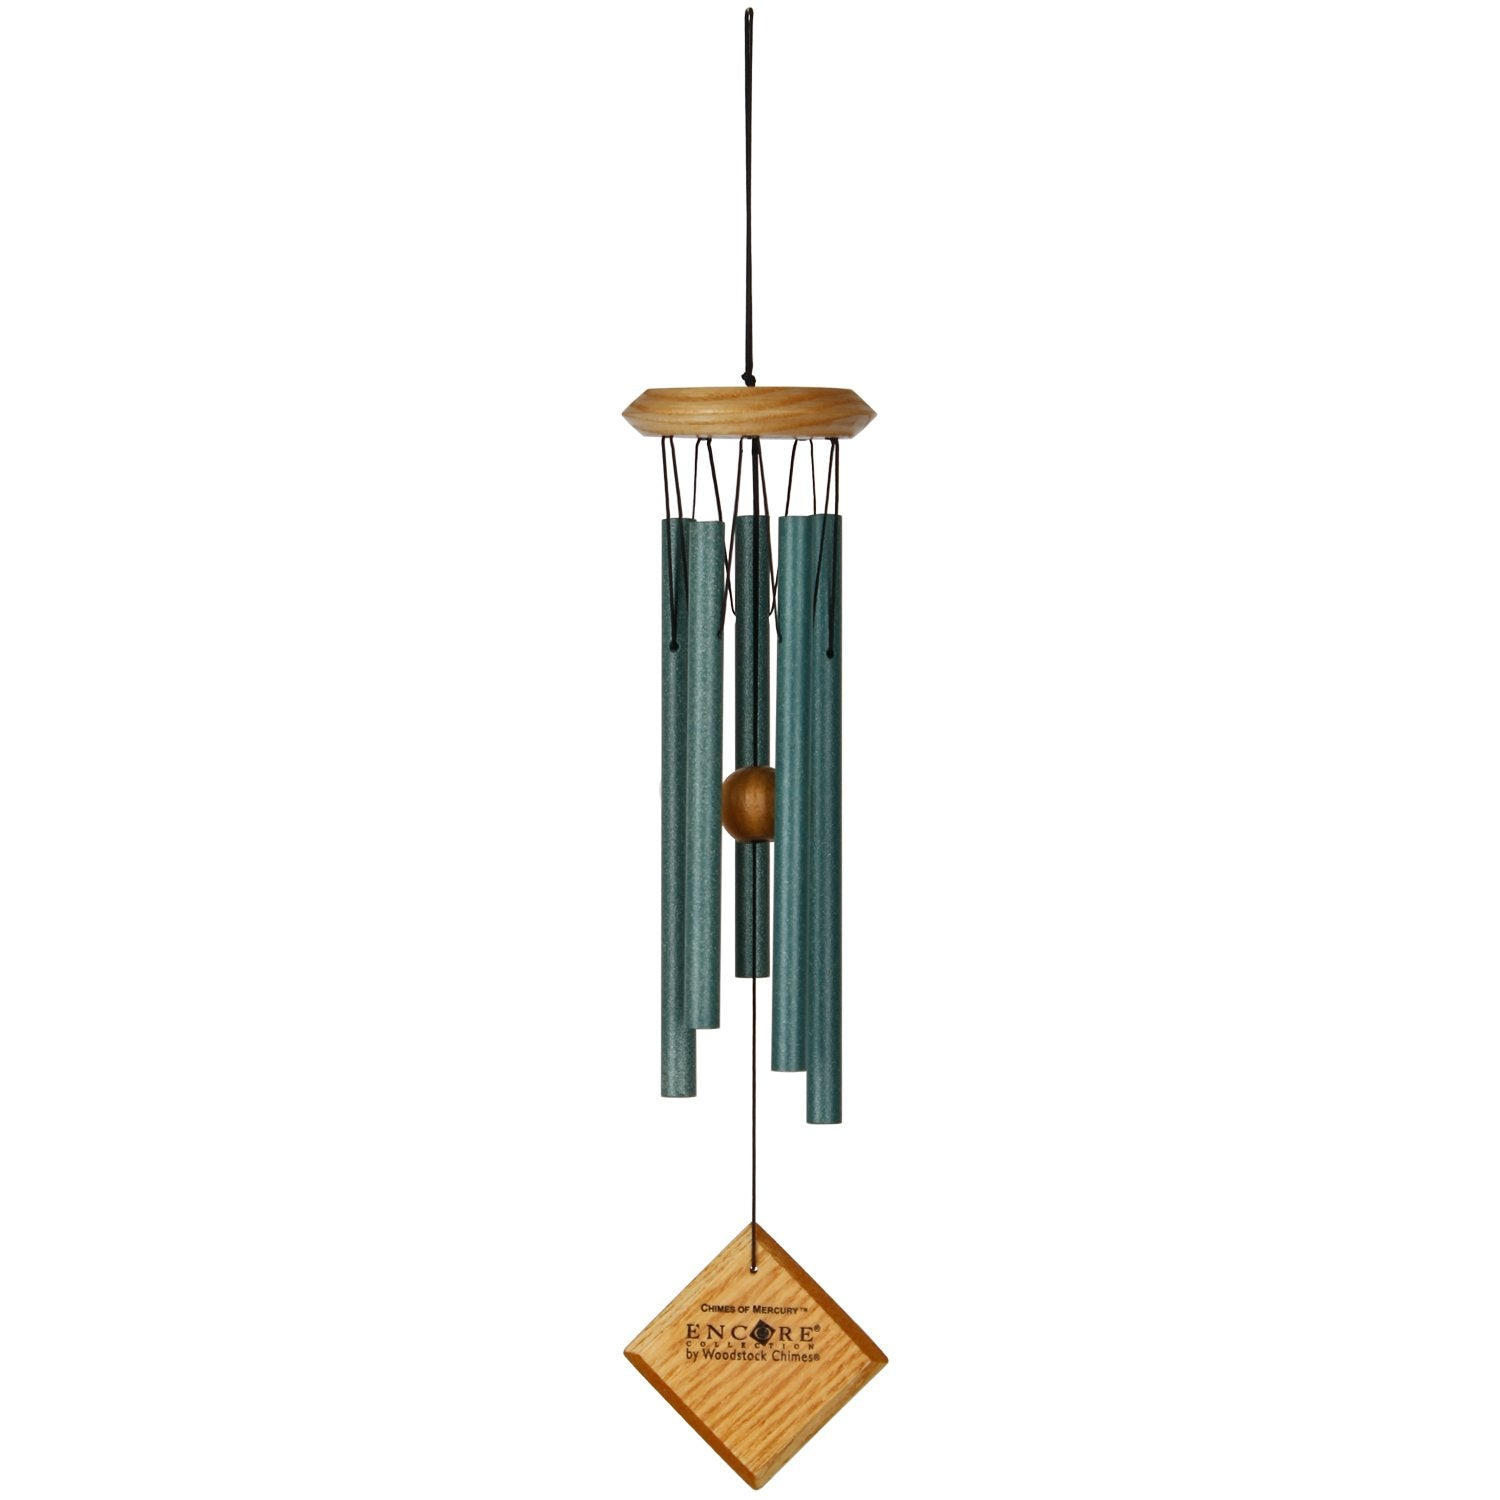 Encore Chimes of Mercury - Verdigris full product image